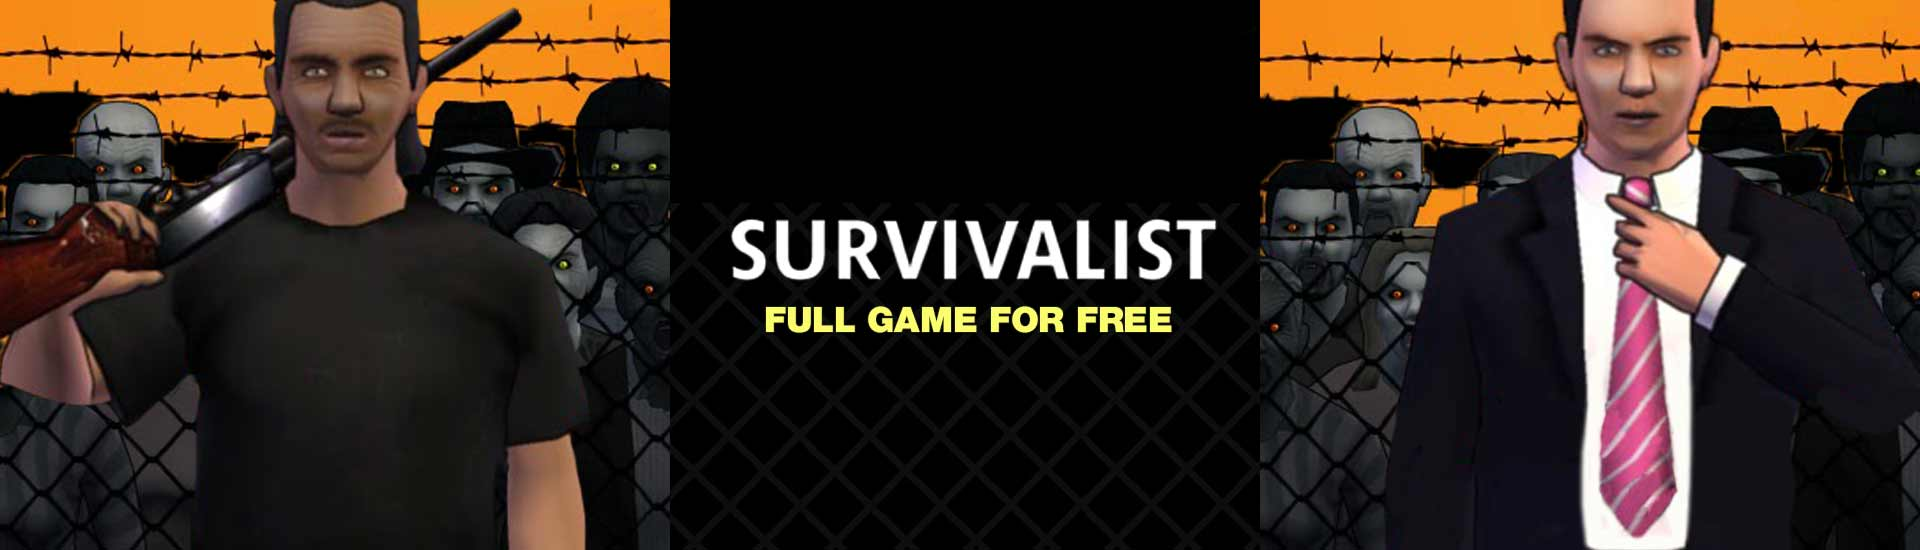 Survivalist cover